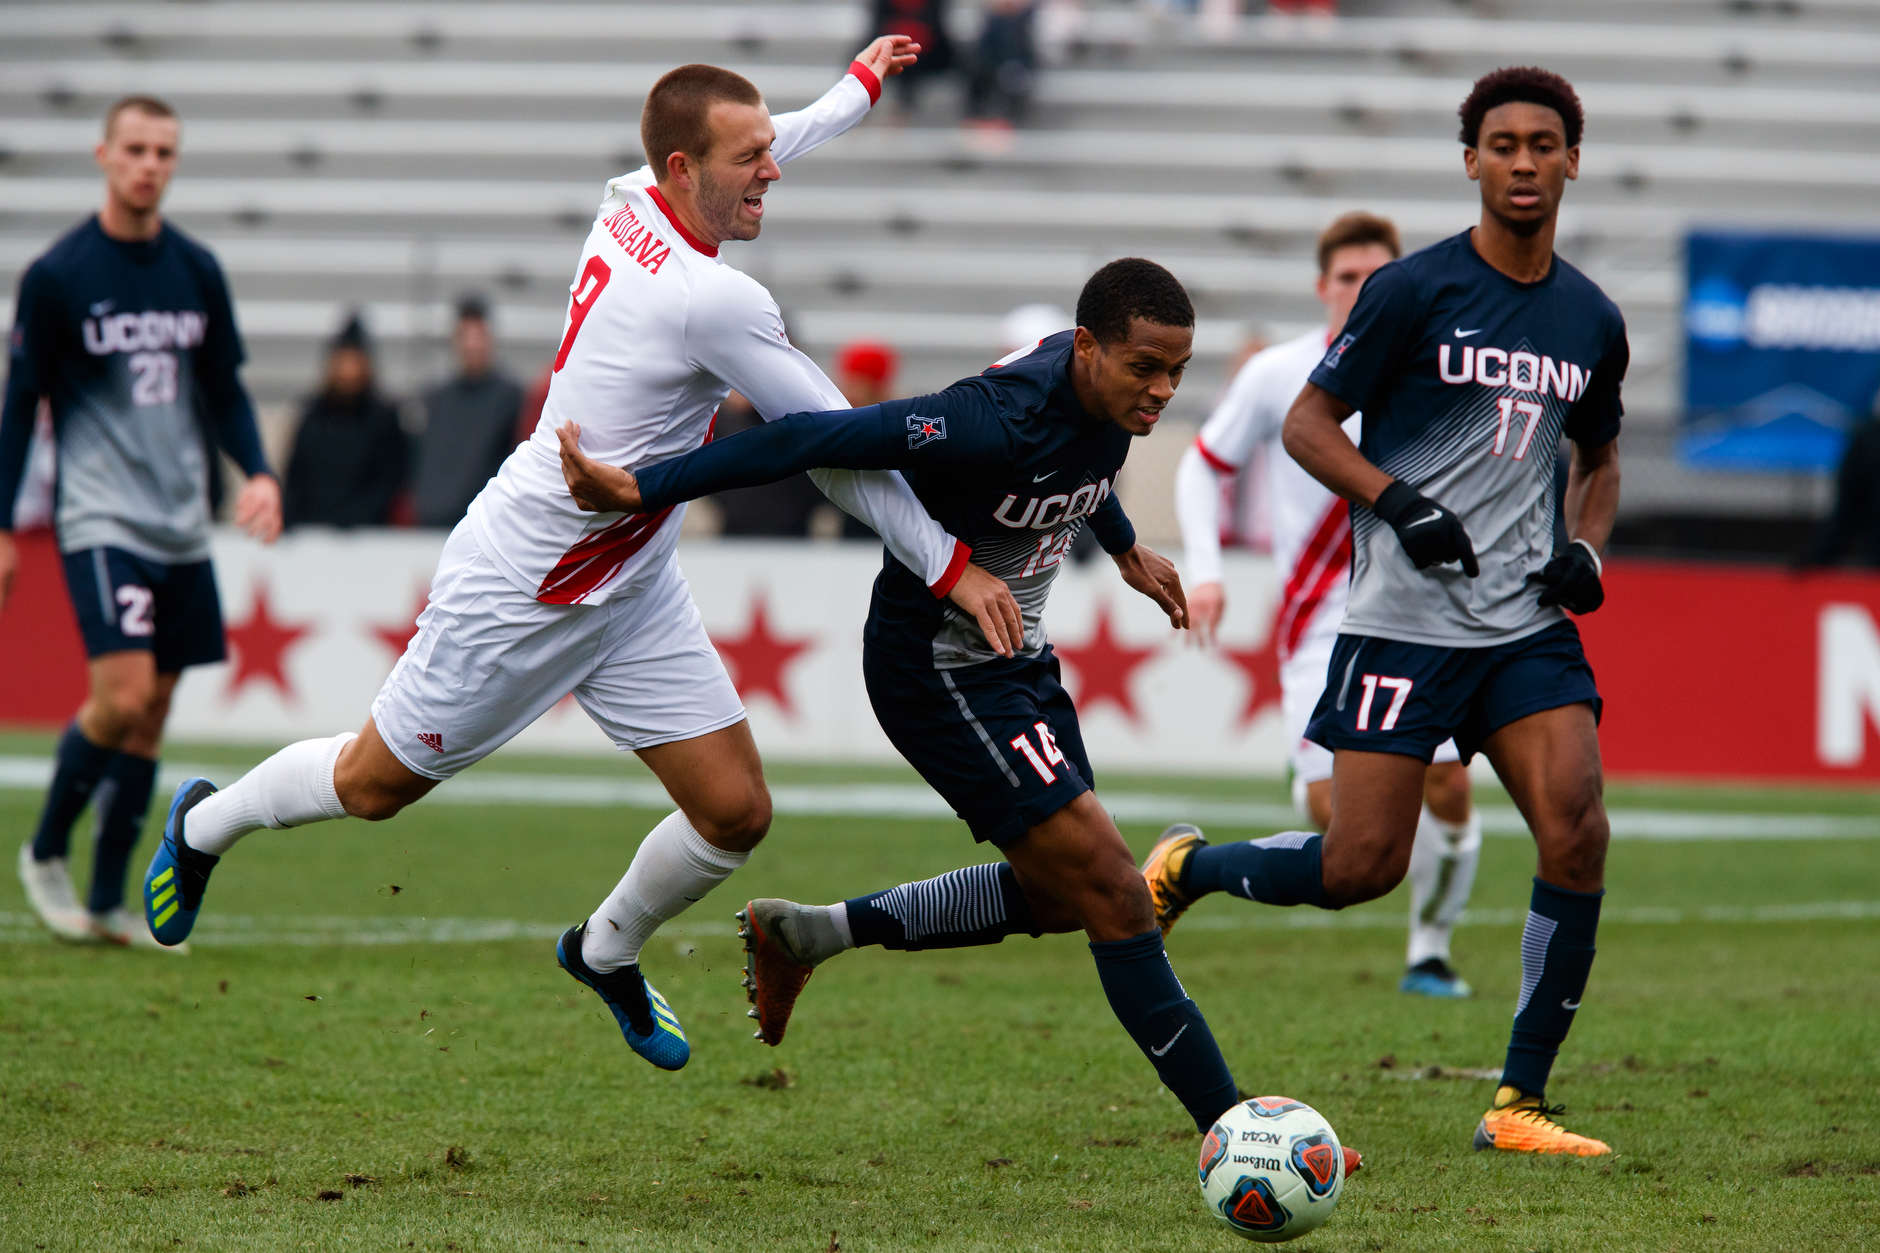 Indiana's Thomas Warr (9) and Connecticut's Munir Saleh (14) compete for the ball during the second half of an NCAA men's soccer tournament match at Bill Armstrong Stadium in Bloomington, Ind. on Sunday, Nov. 18, 2018. IU won 4-0. (James Brosher for The Herald-Times)